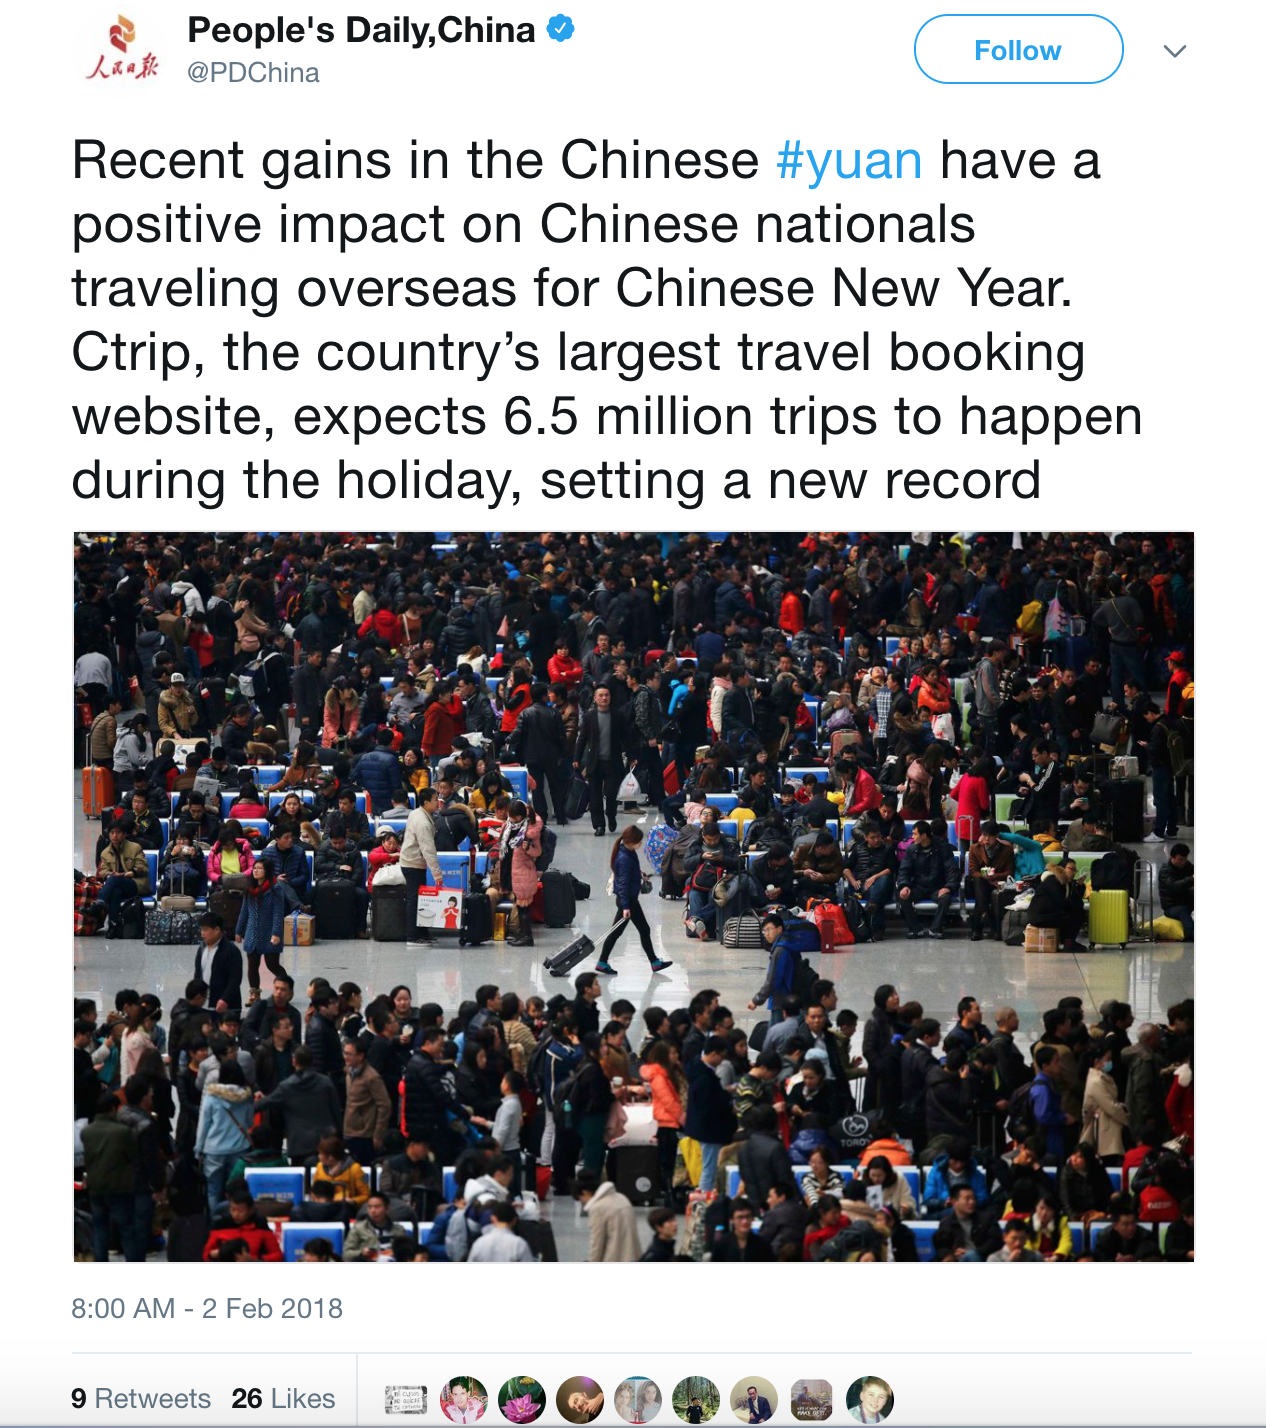 Screenshot of People's Daily tweet showing traveling Chinese nationals